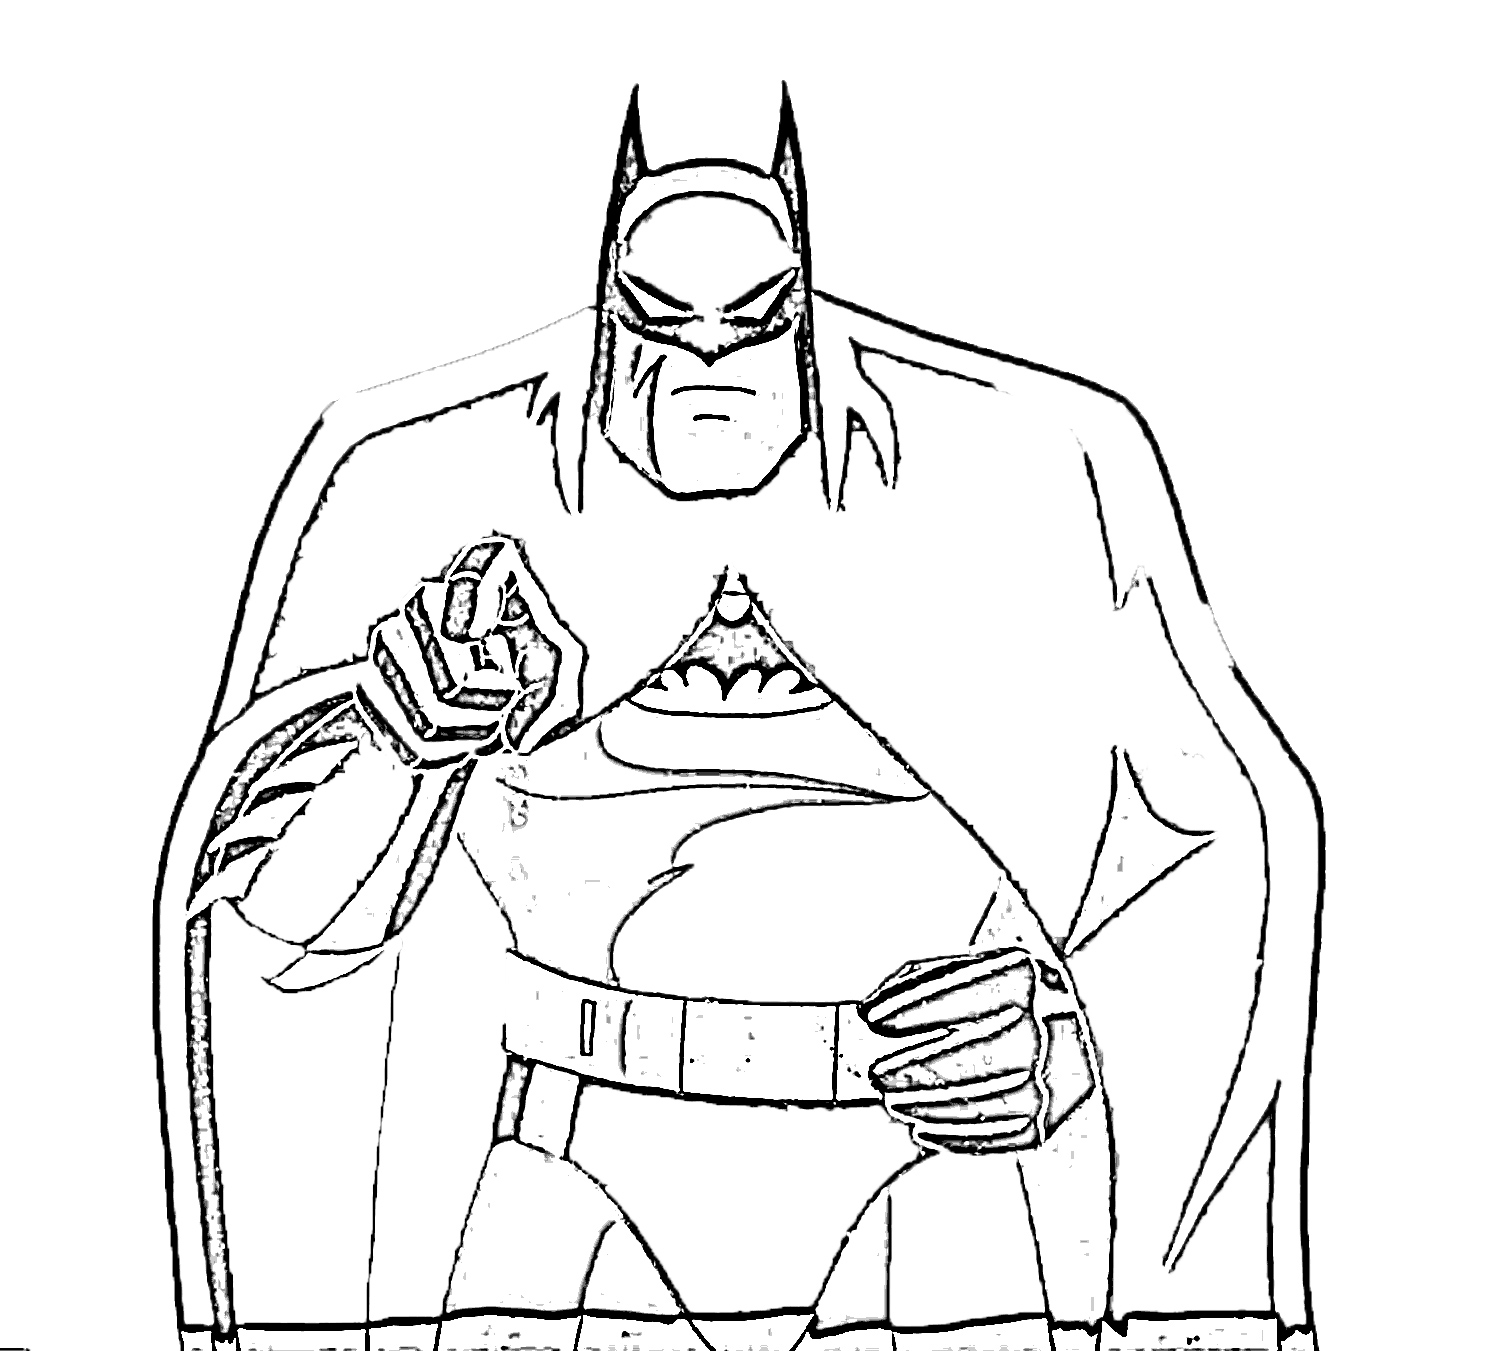 coloring pictures of batman 17 best images about batman coloring pages on pinterest coloring pictures of batman